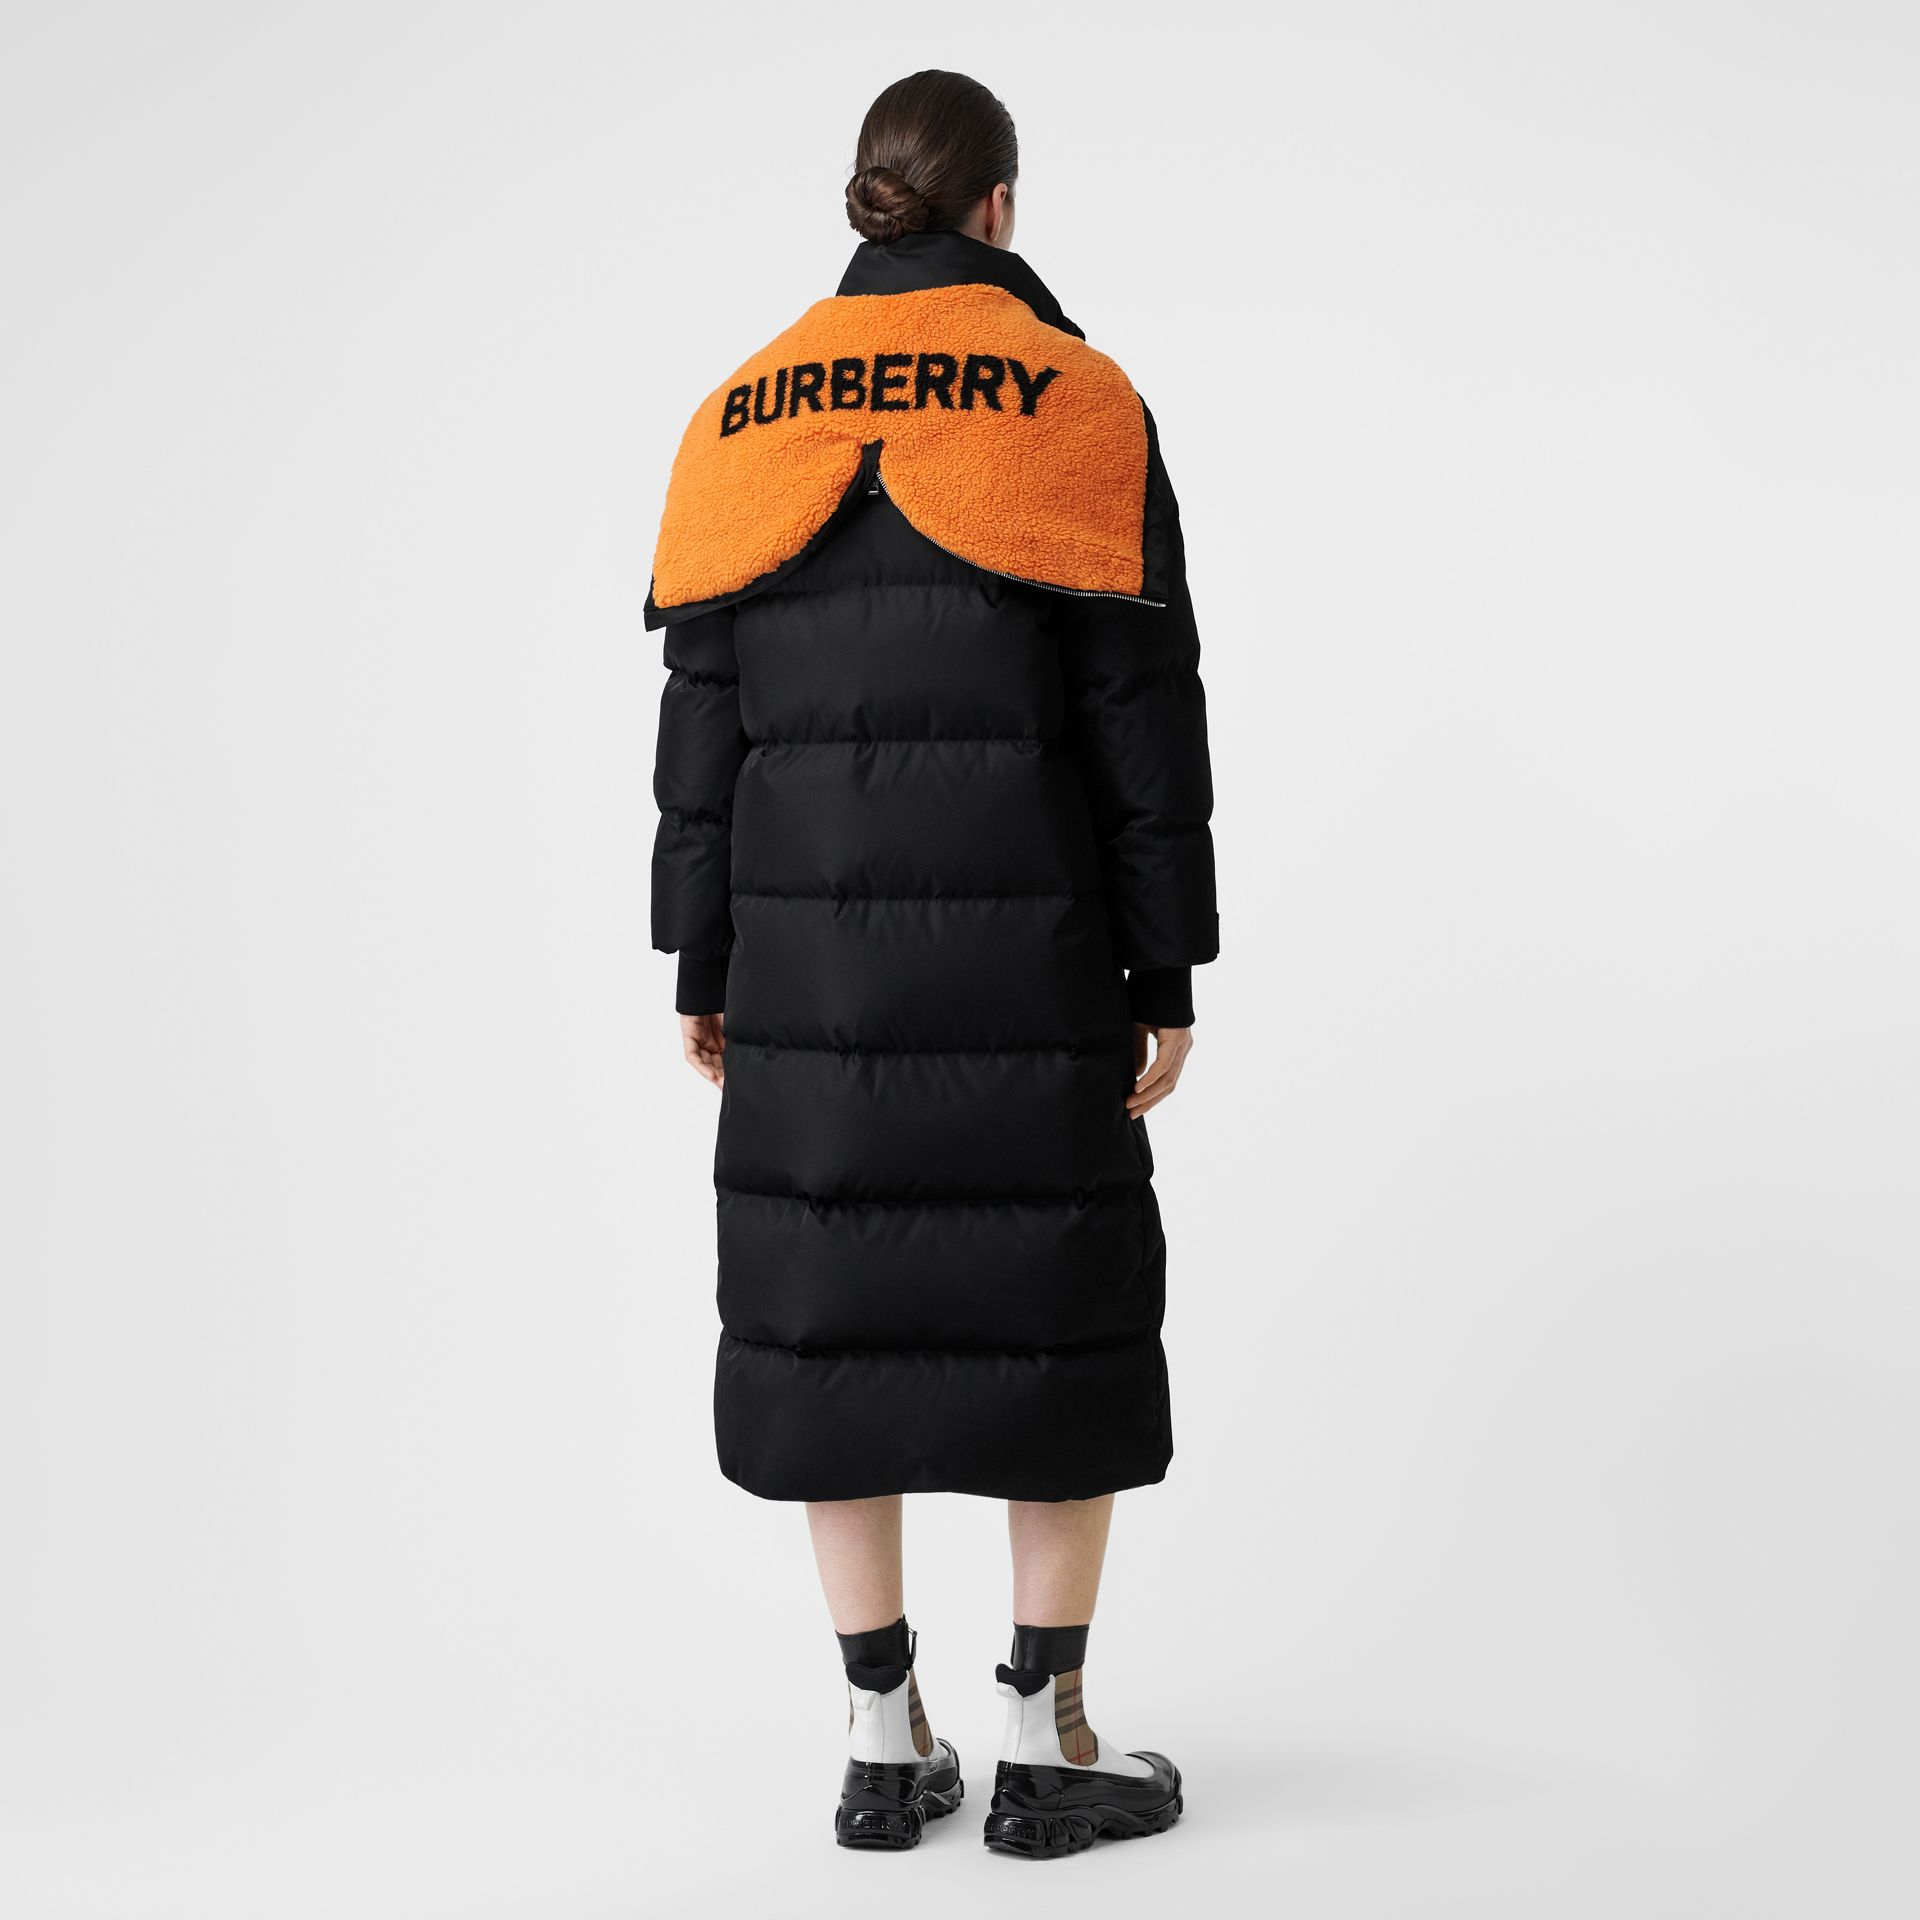 Doudoune en ECONYL® avec logo (Noir/orange) - Femme | Burberry - photo de la galerie 2